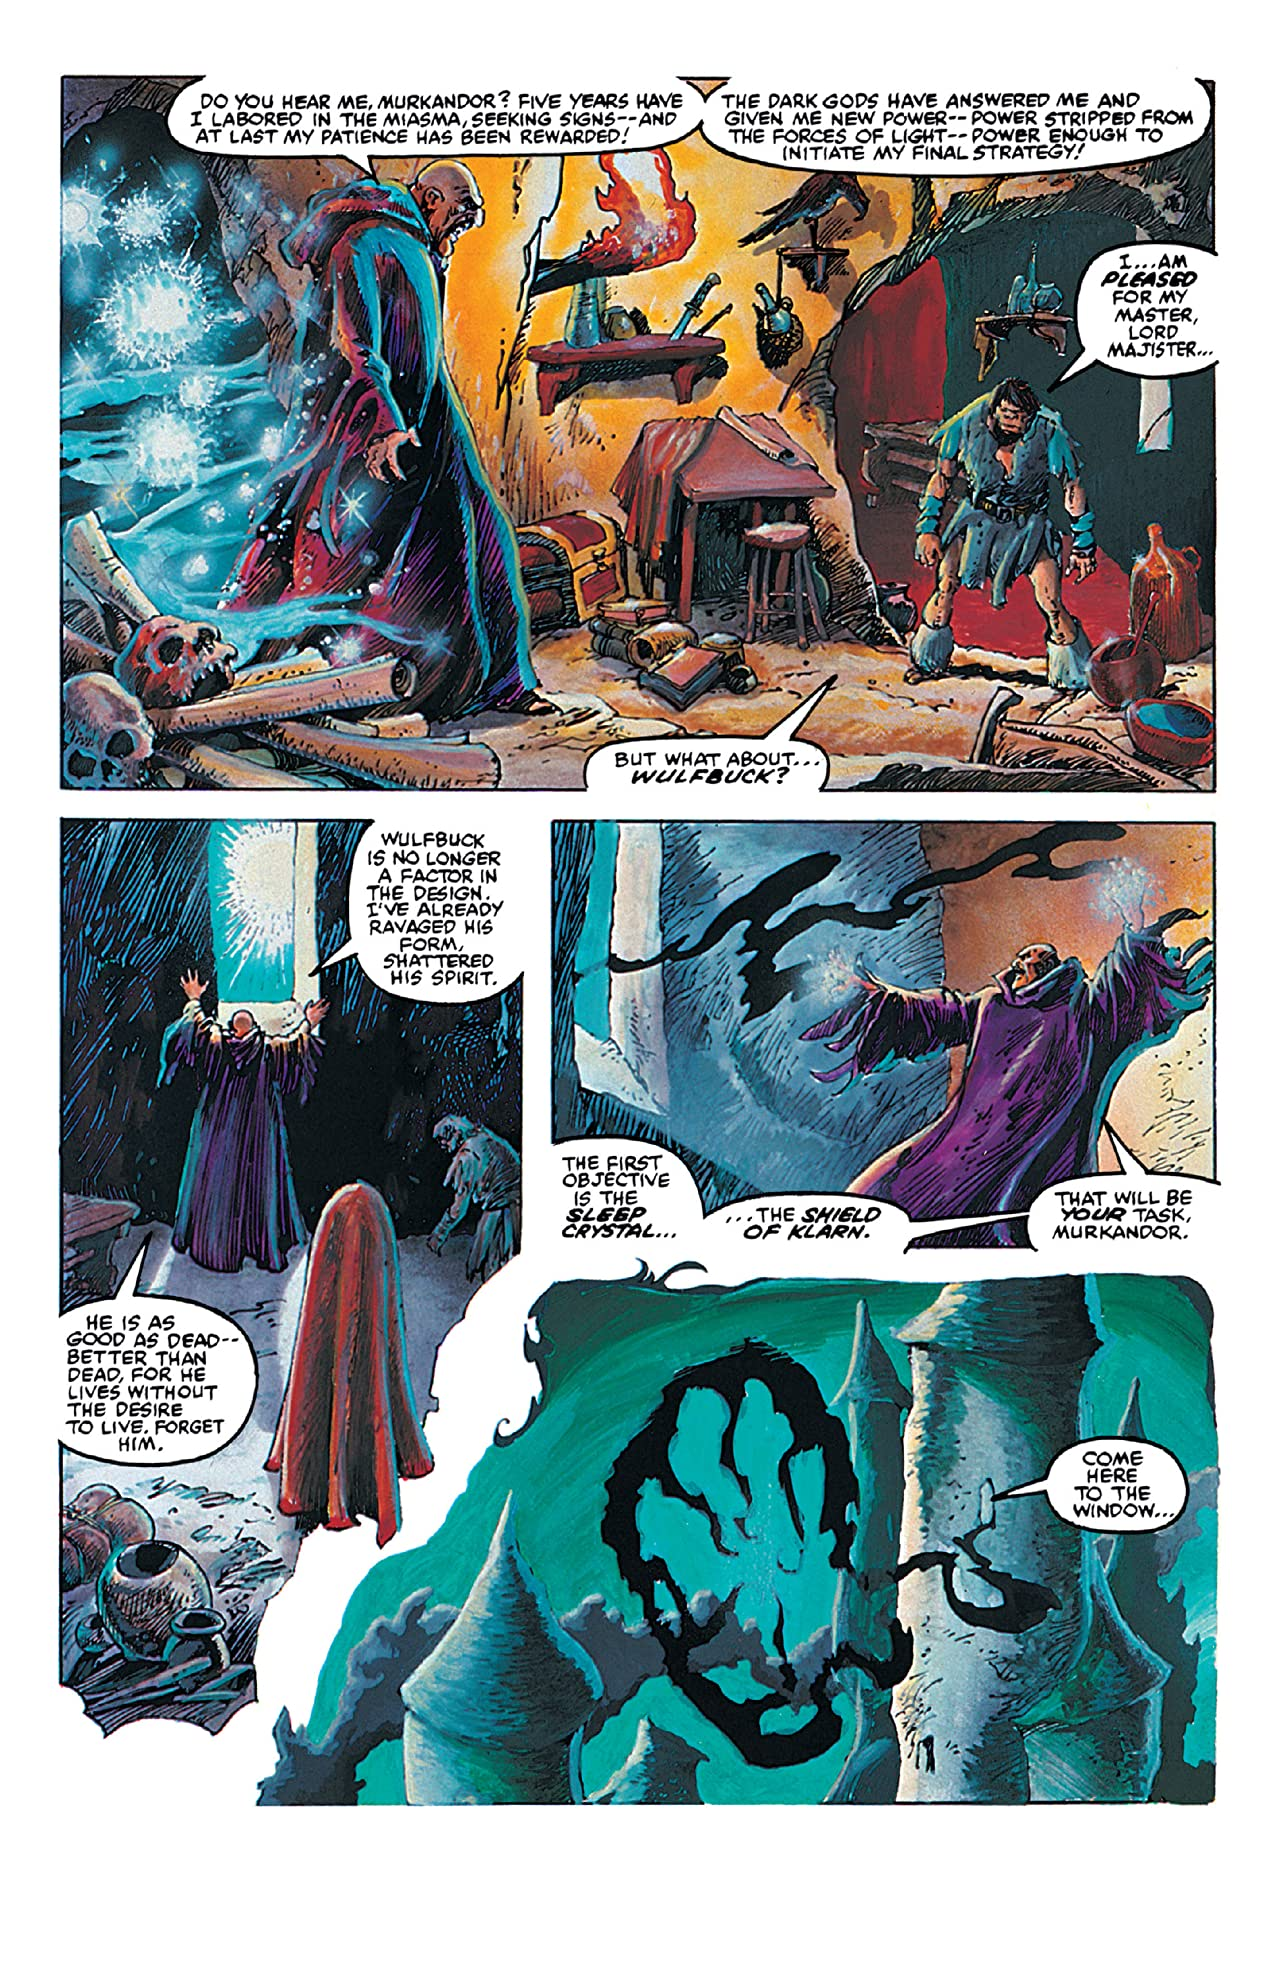 Weirdworld: The Dragonmaster Of Klarn